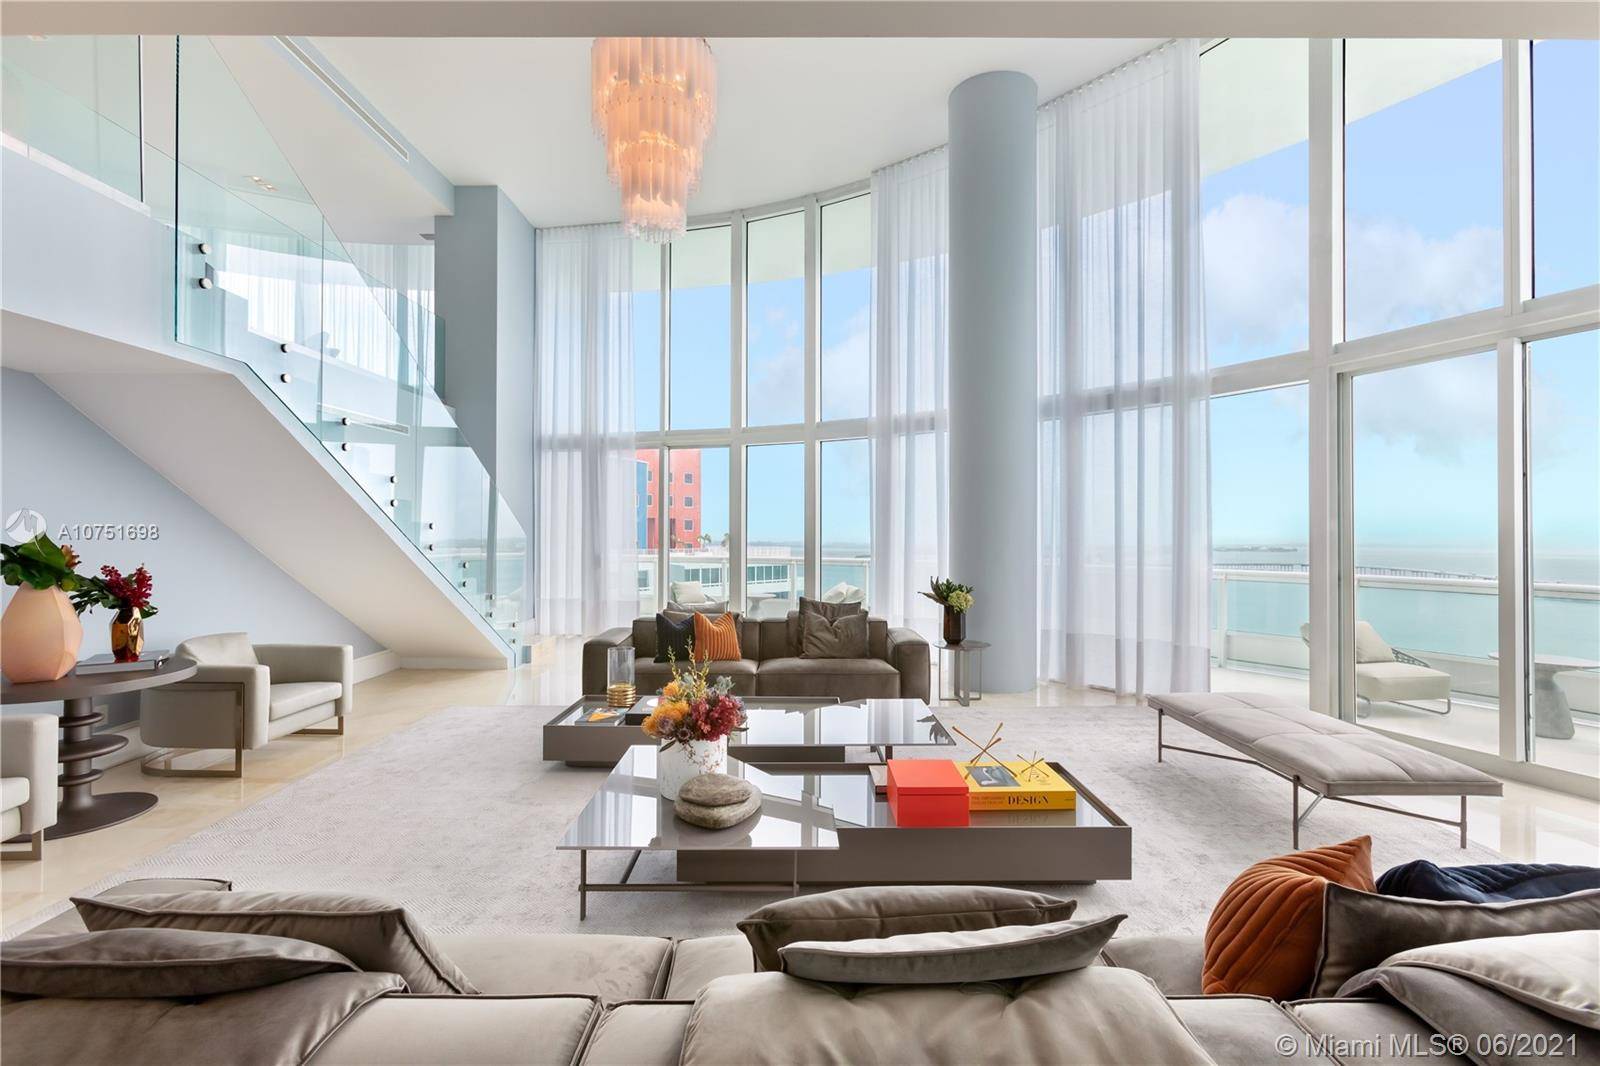 LUXURIOUS SANTA MARIA BUILDING ...AMAZING TWO STORY RESIDENCE WITH OVER 5700 SQ FT UNDER AIR PLUS BALCONIES PROFESSIONALLY DECORATED WITH SPECTACULAR VIEWS OF THE OCEAN, KEY BISCAYNE AND CITY SKYLINE LOCATED IN THE EXCLUSIVE SANTA MARIA BUILDING,  FEATURING 4 BEDROOMS AND 5.5 BATHS , WHITE KITCHEN ,AMAZING NEW FITNESS CENTER ON TOP OF THE BUILDING, PRIVATE ELEVATORS,COFFEE SHOP, SELLERS VERY MOTIVATED .. VERY EZ TO SHOW..PRICE JUST REDUCED...